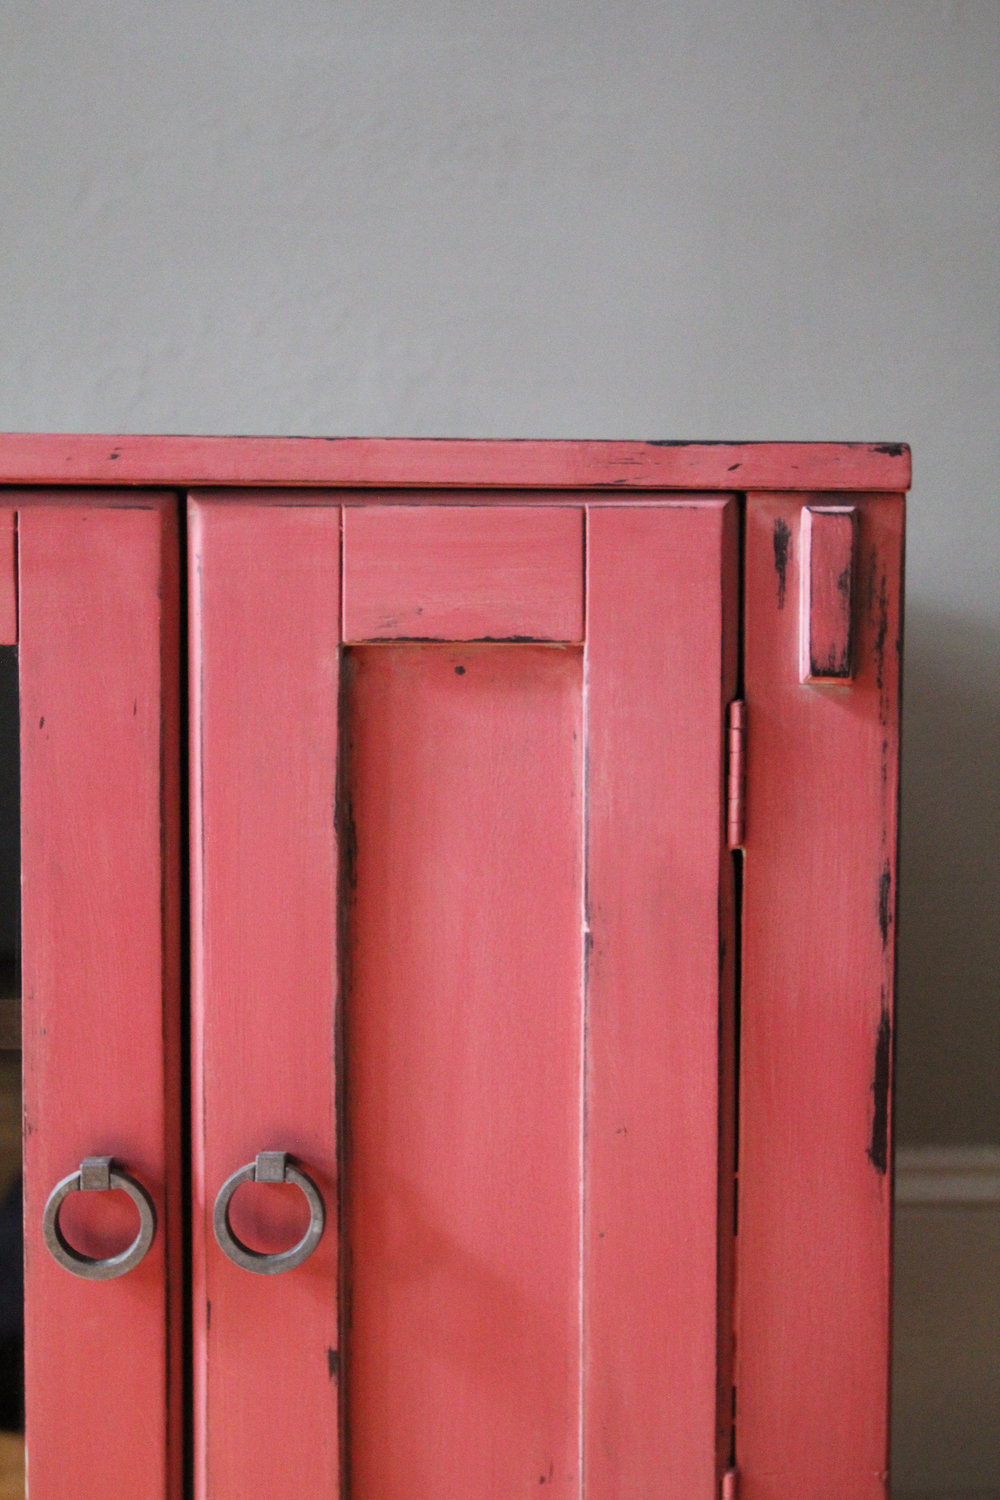 jo-torrijos-a-simpler-design-annie-sloan-chalk-paint-burgundy-arles-english-yellow-coral-atlanta-painted-furniture-4.jpg